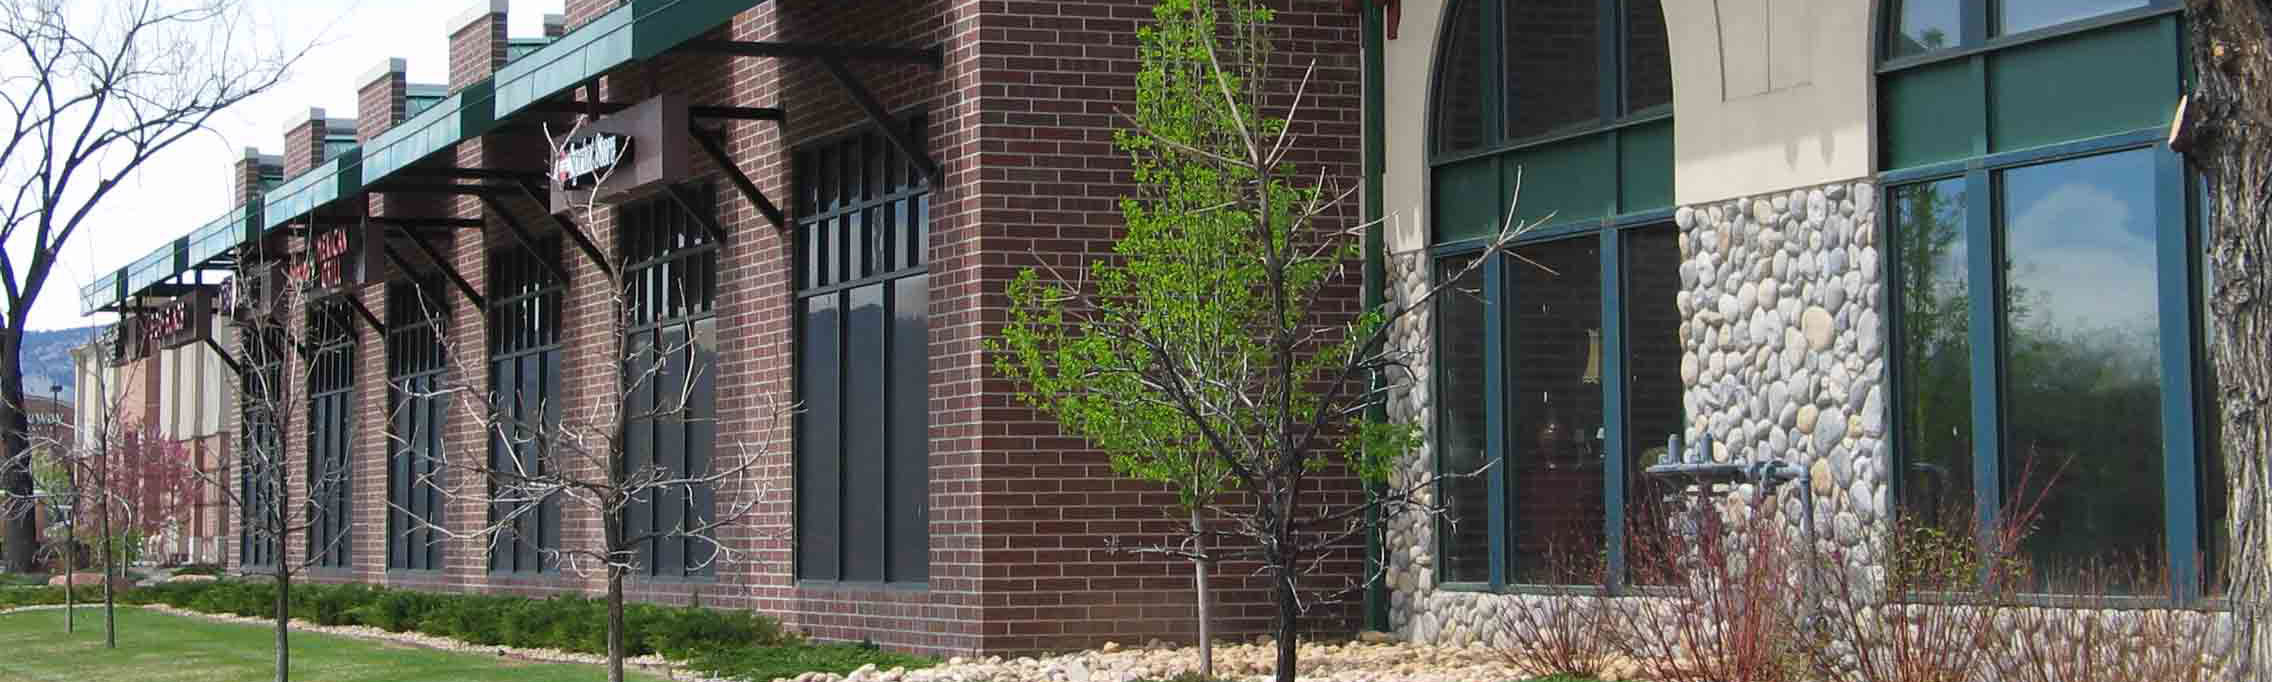 Our Uniwall Structural Brick Allow For You To Design With The Beauty And Strength Of Clay Masonry All Are Hollow